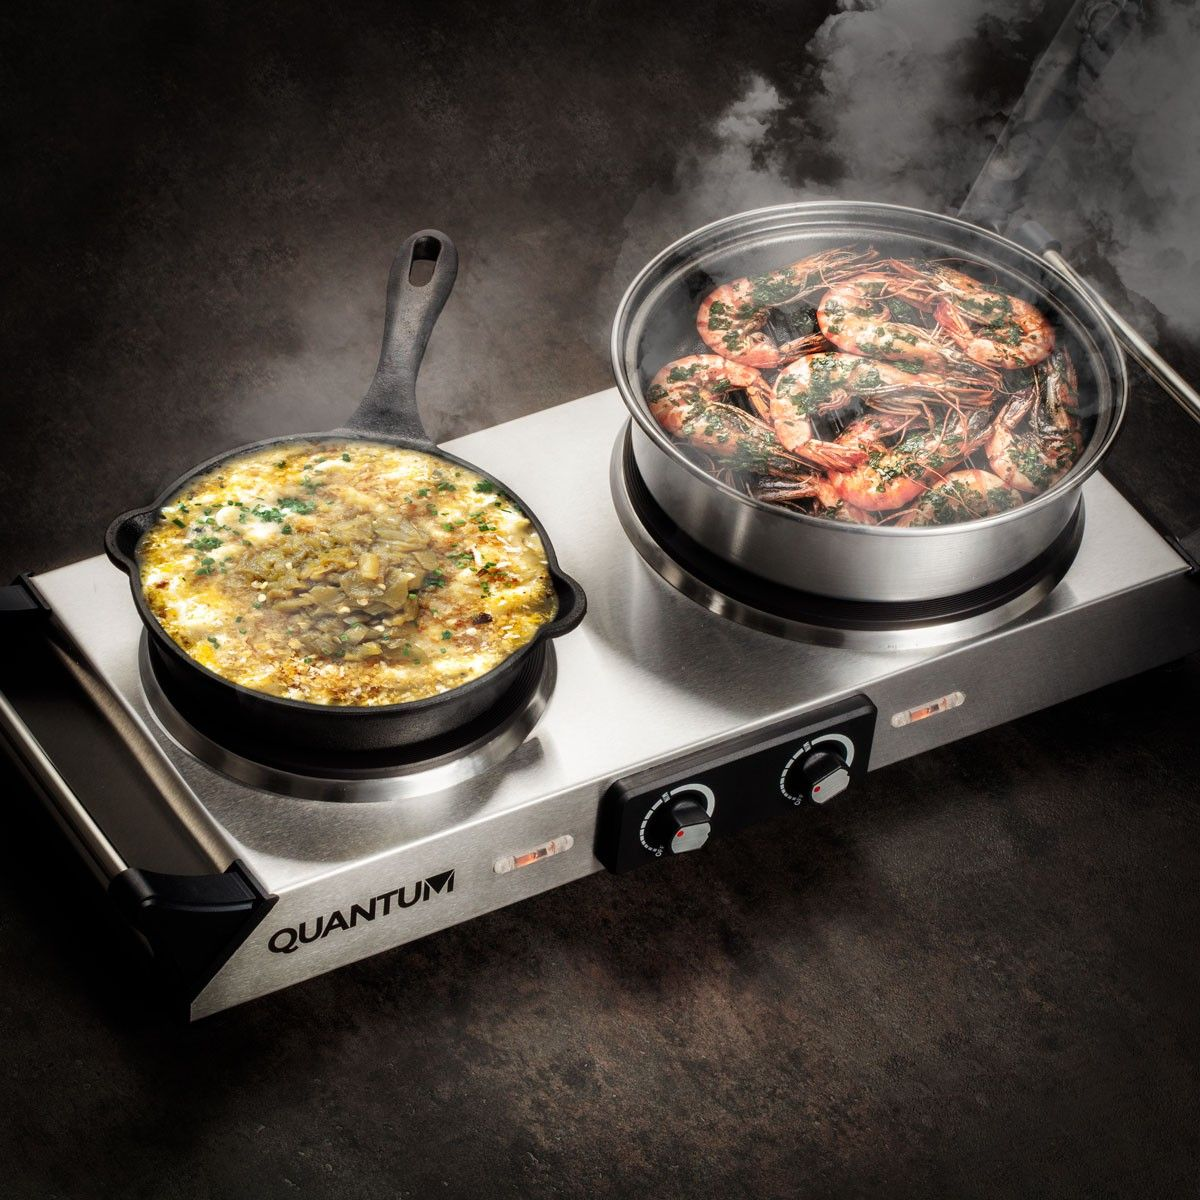 Quantum Double Stainless Steel Countertop Electric Burner With